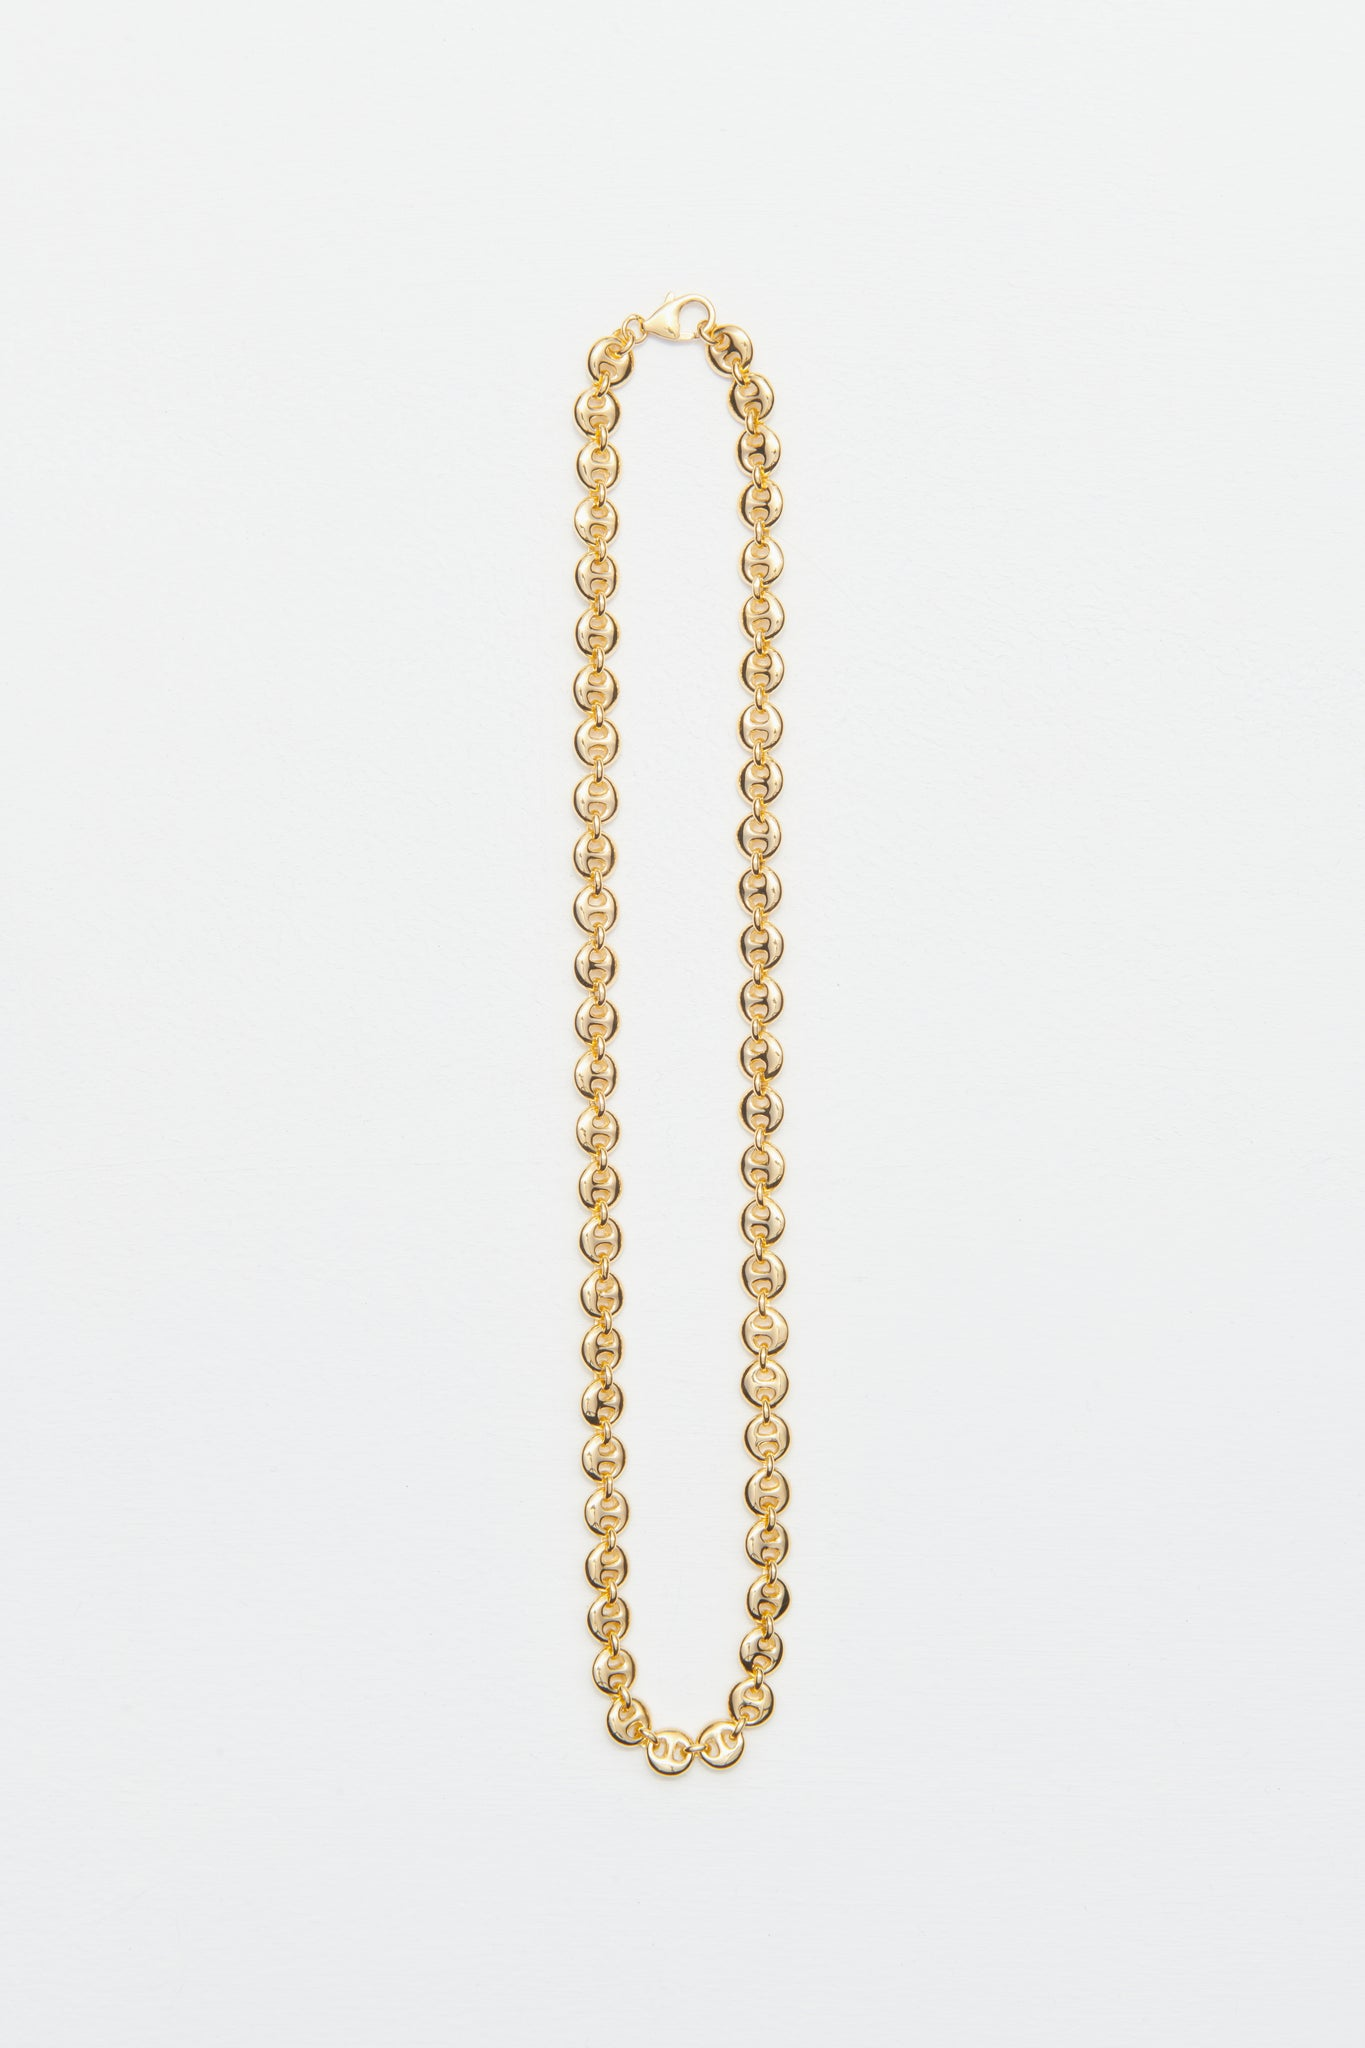 18K GOLD CIRCLE LINK NECKLACE